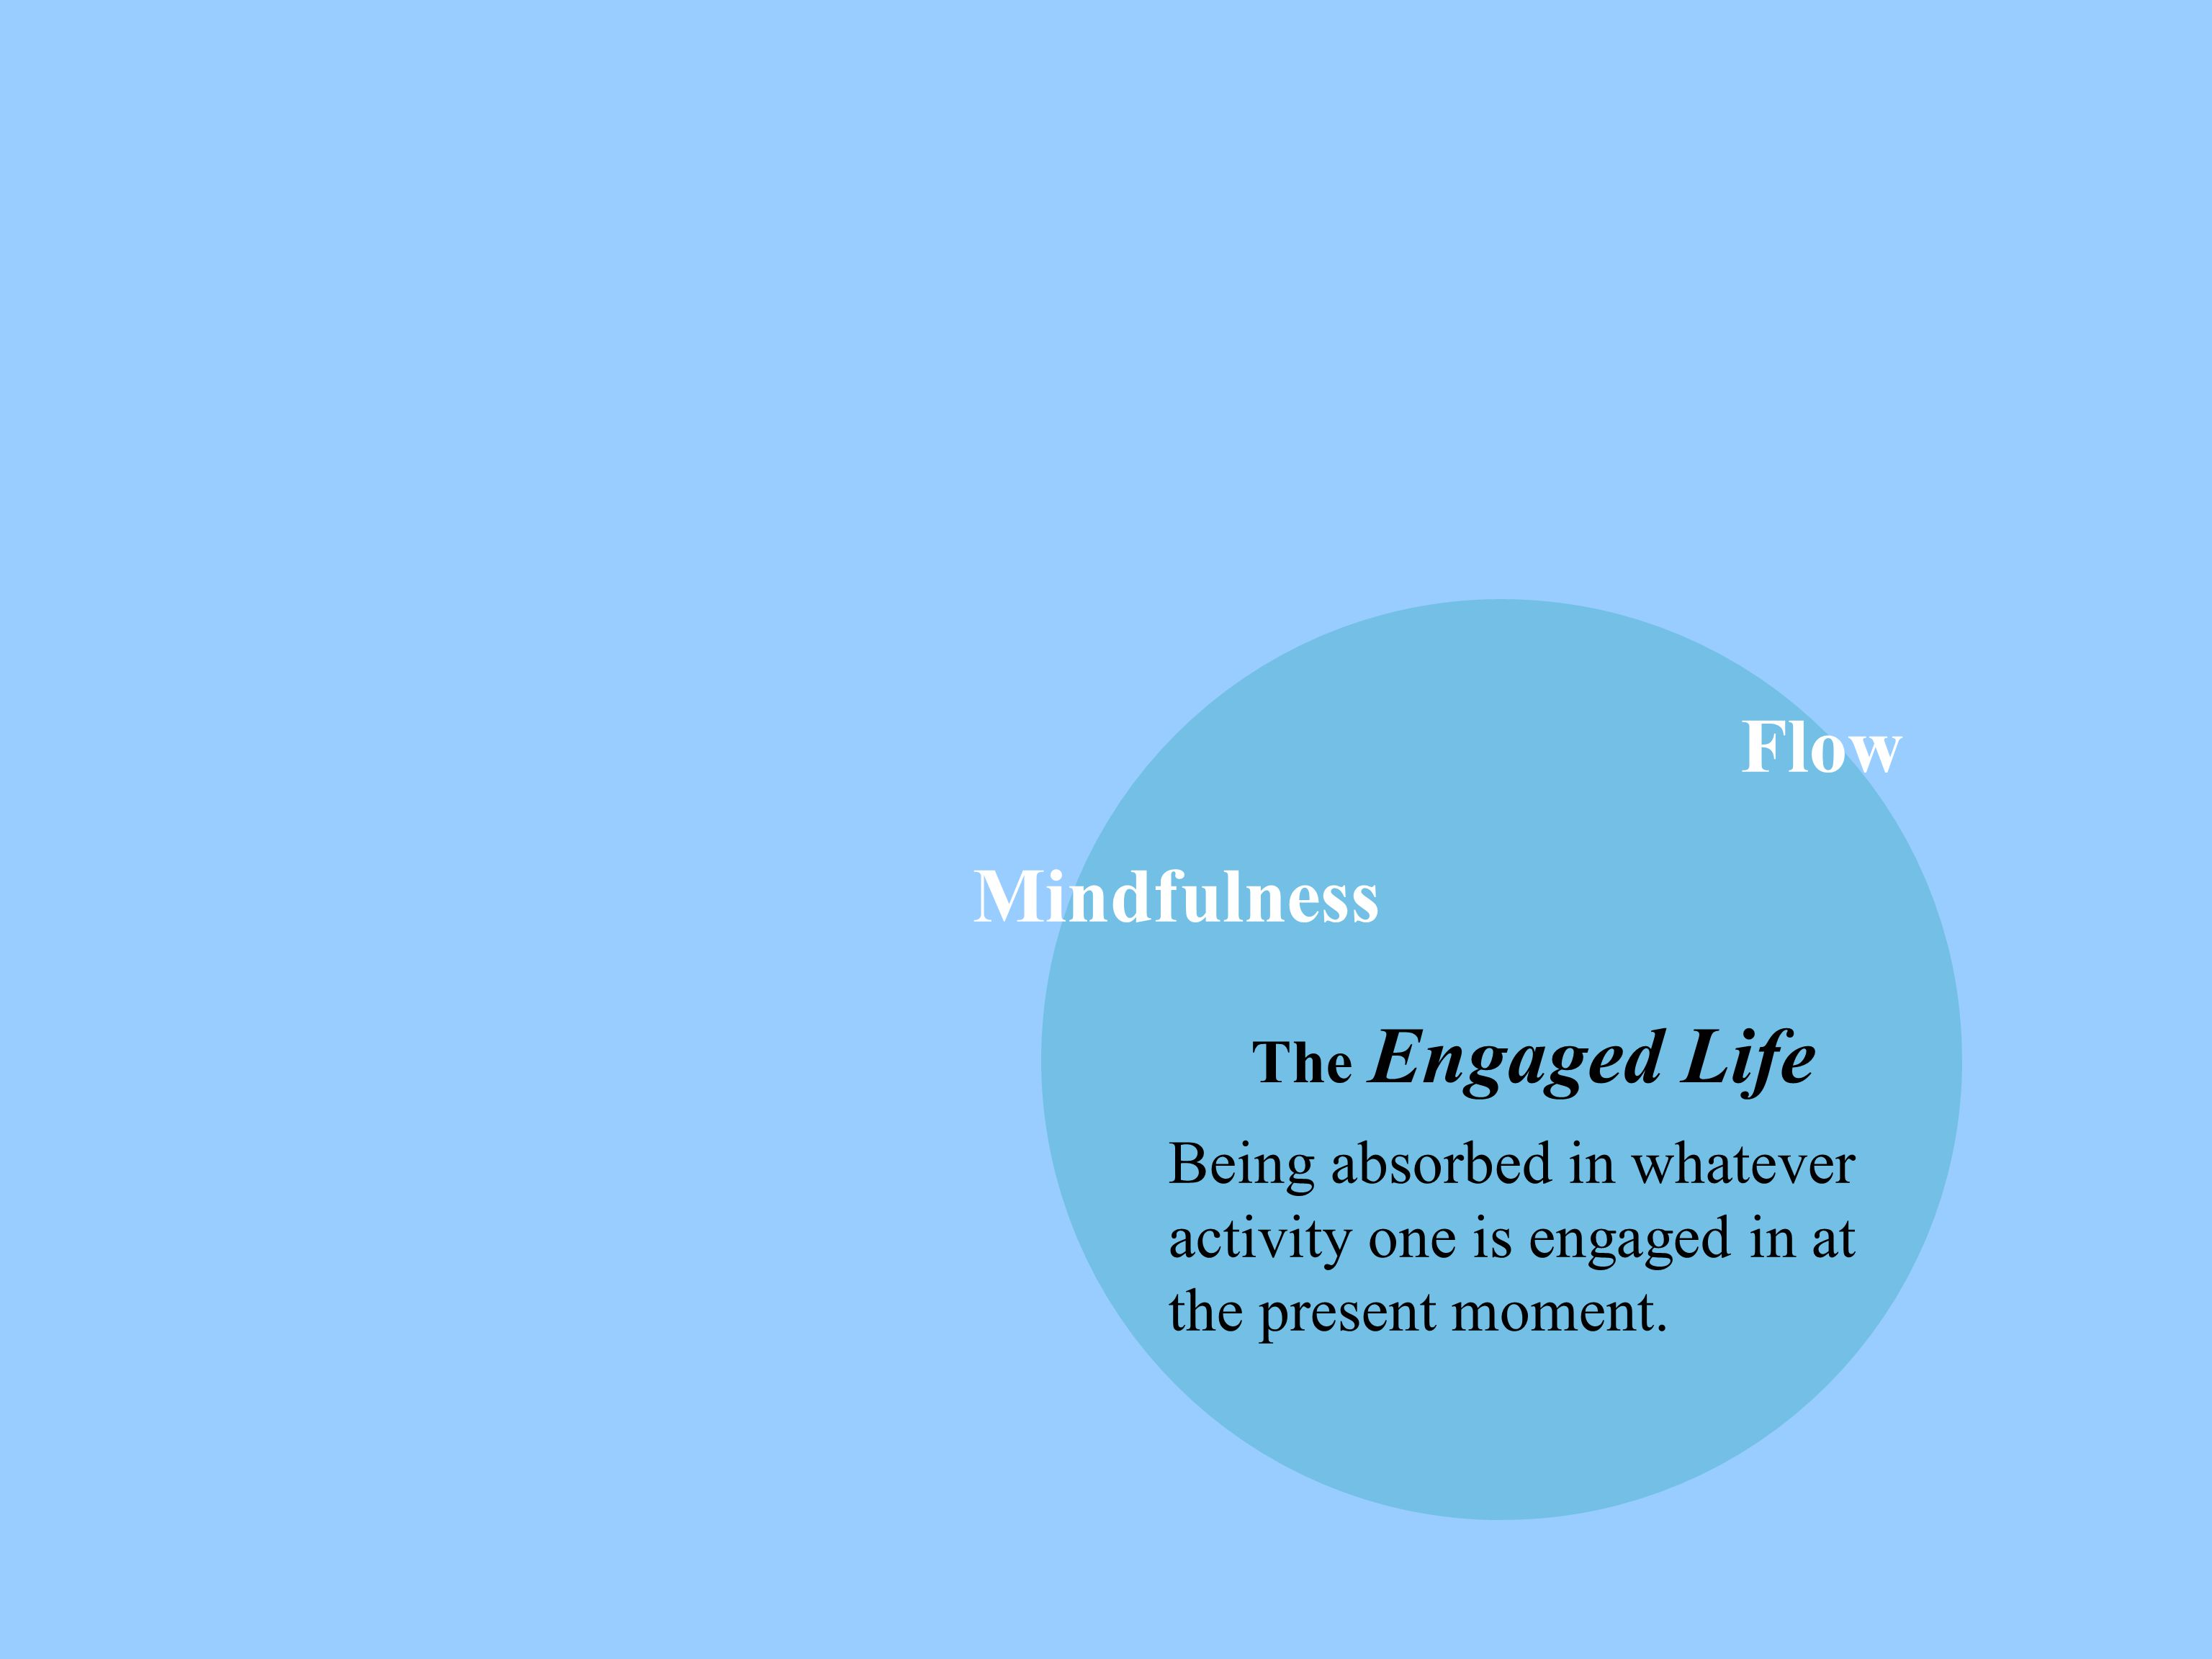 The Engaged Life Being absorbed in whatever activity one is engaged in at the present moment. Mindfulness Flow